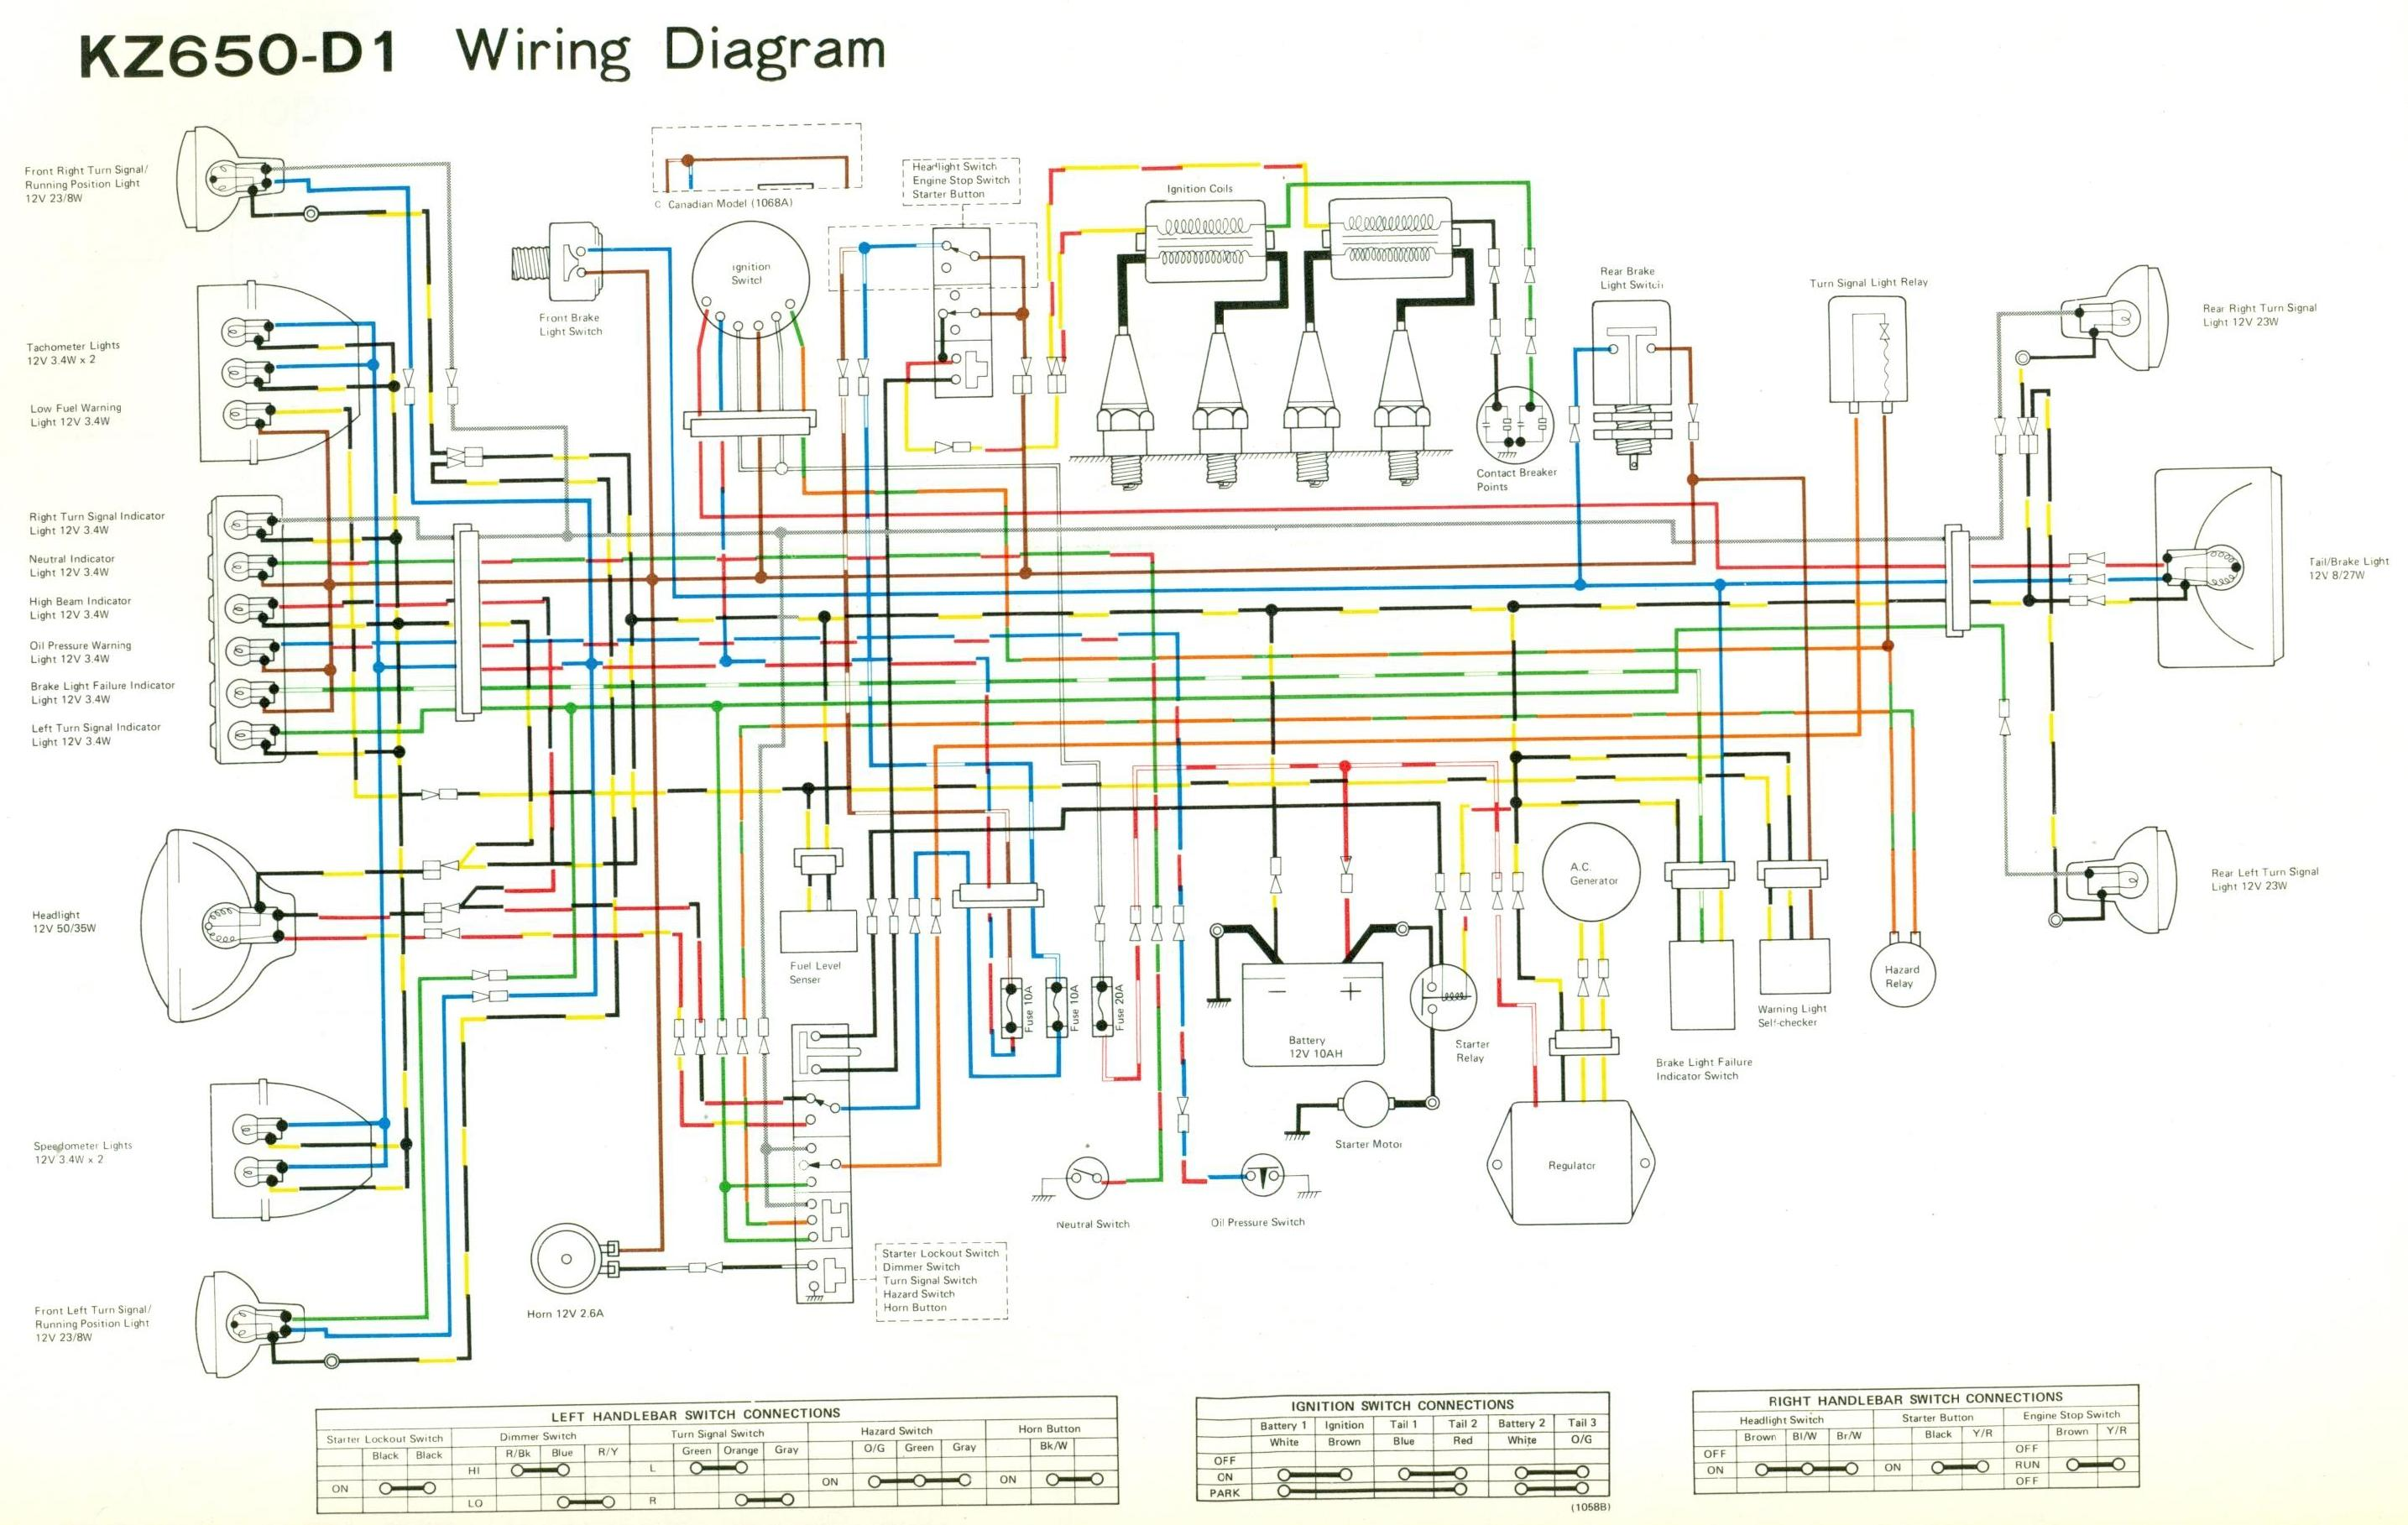 Wiring Diagram For Kawasaki Prairie 360 - Wiring Diagram K9 on